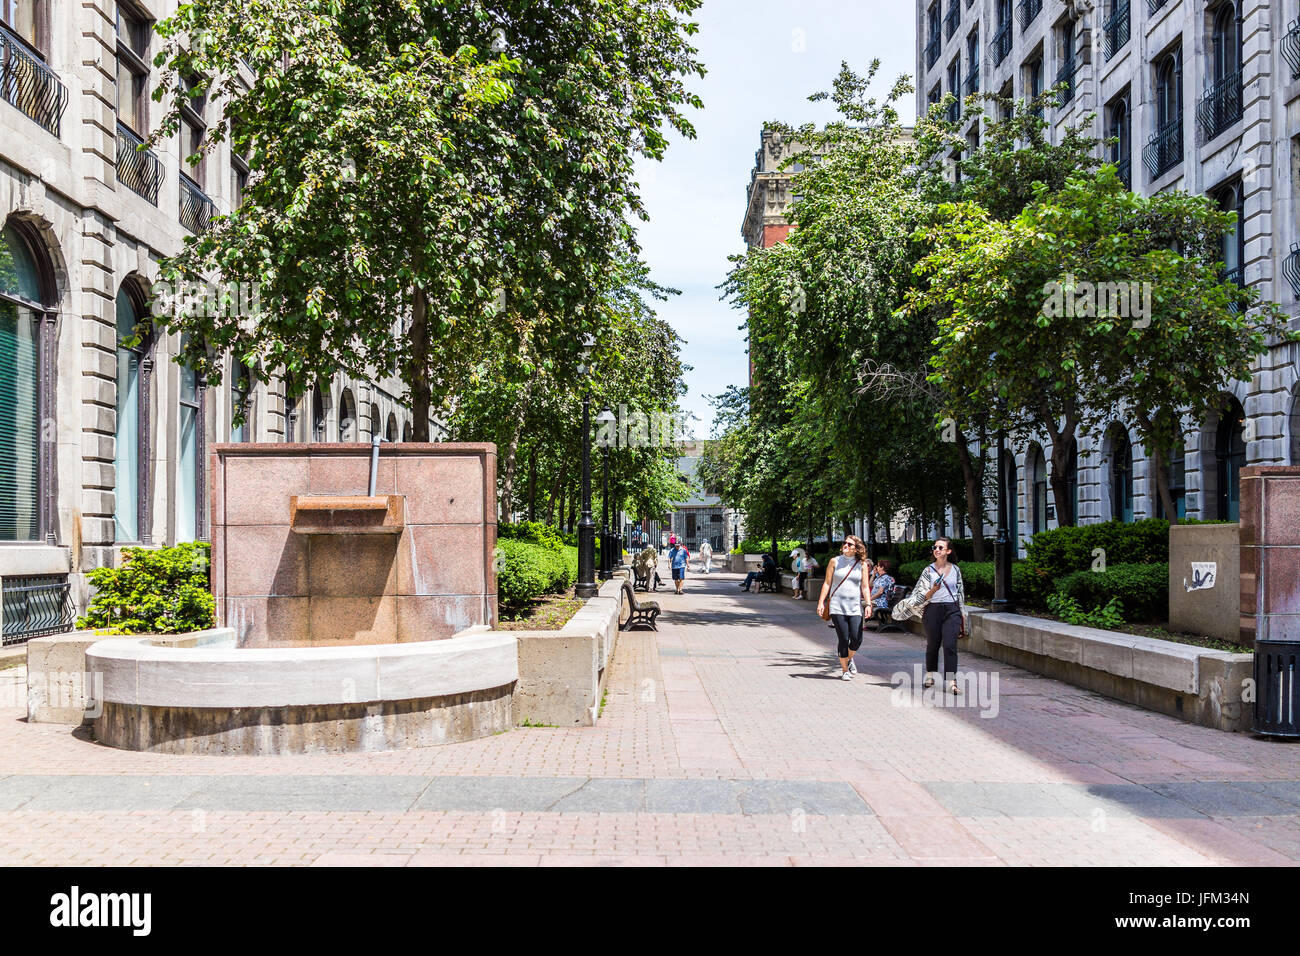 Montreal, Canada - May 28, 2017: Old town area with park on Rue le Royer during summer day with people sitting and - Stock Image